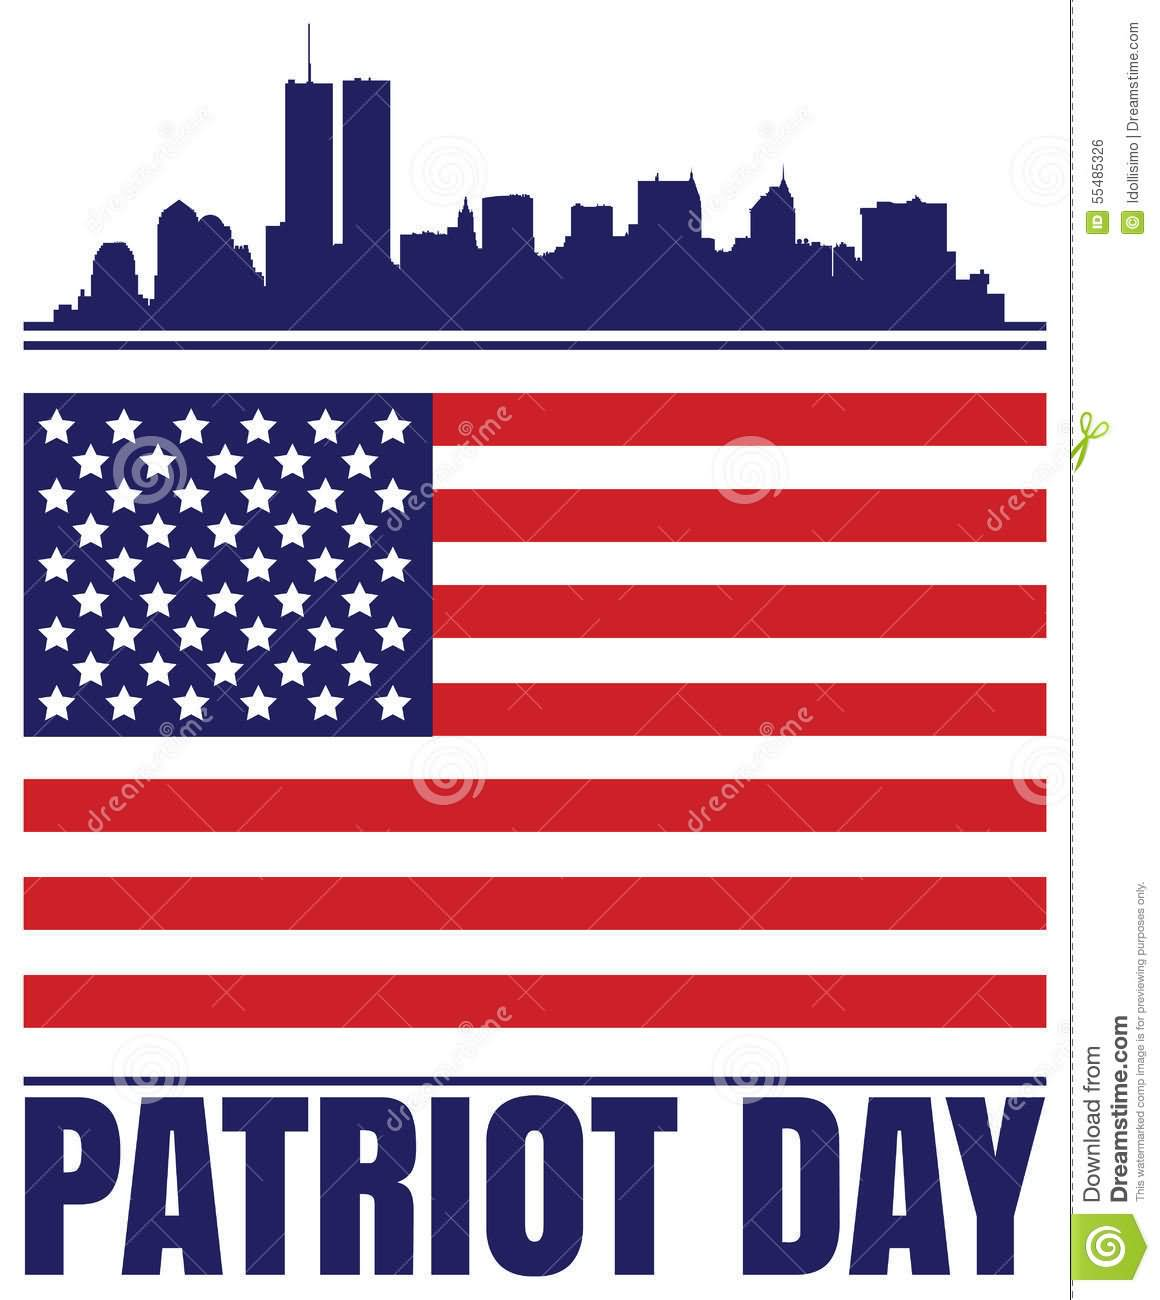 Patriot Day Wishes Image